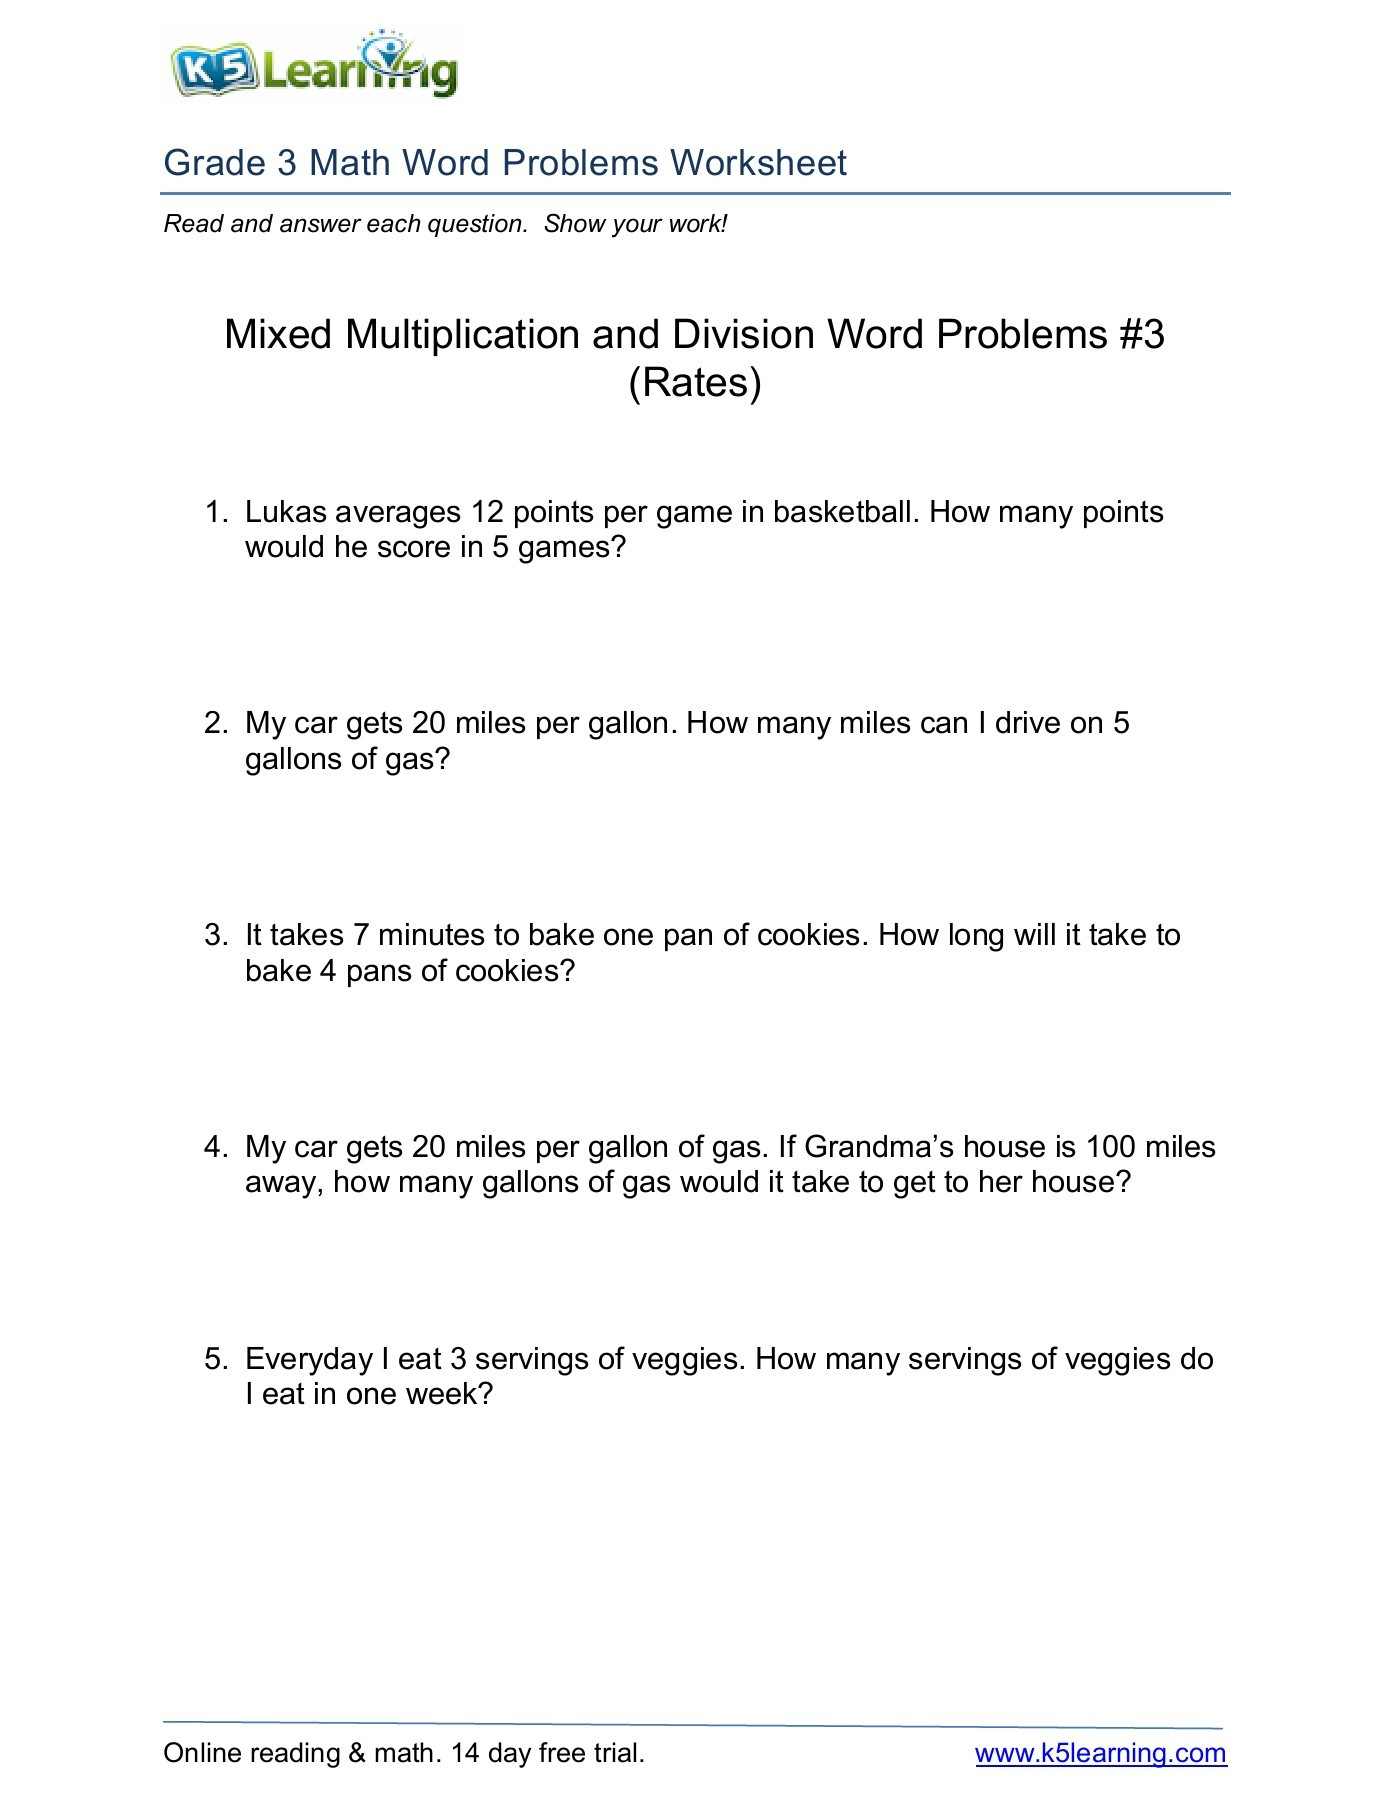 Multiplication And Division Problems Worksheets